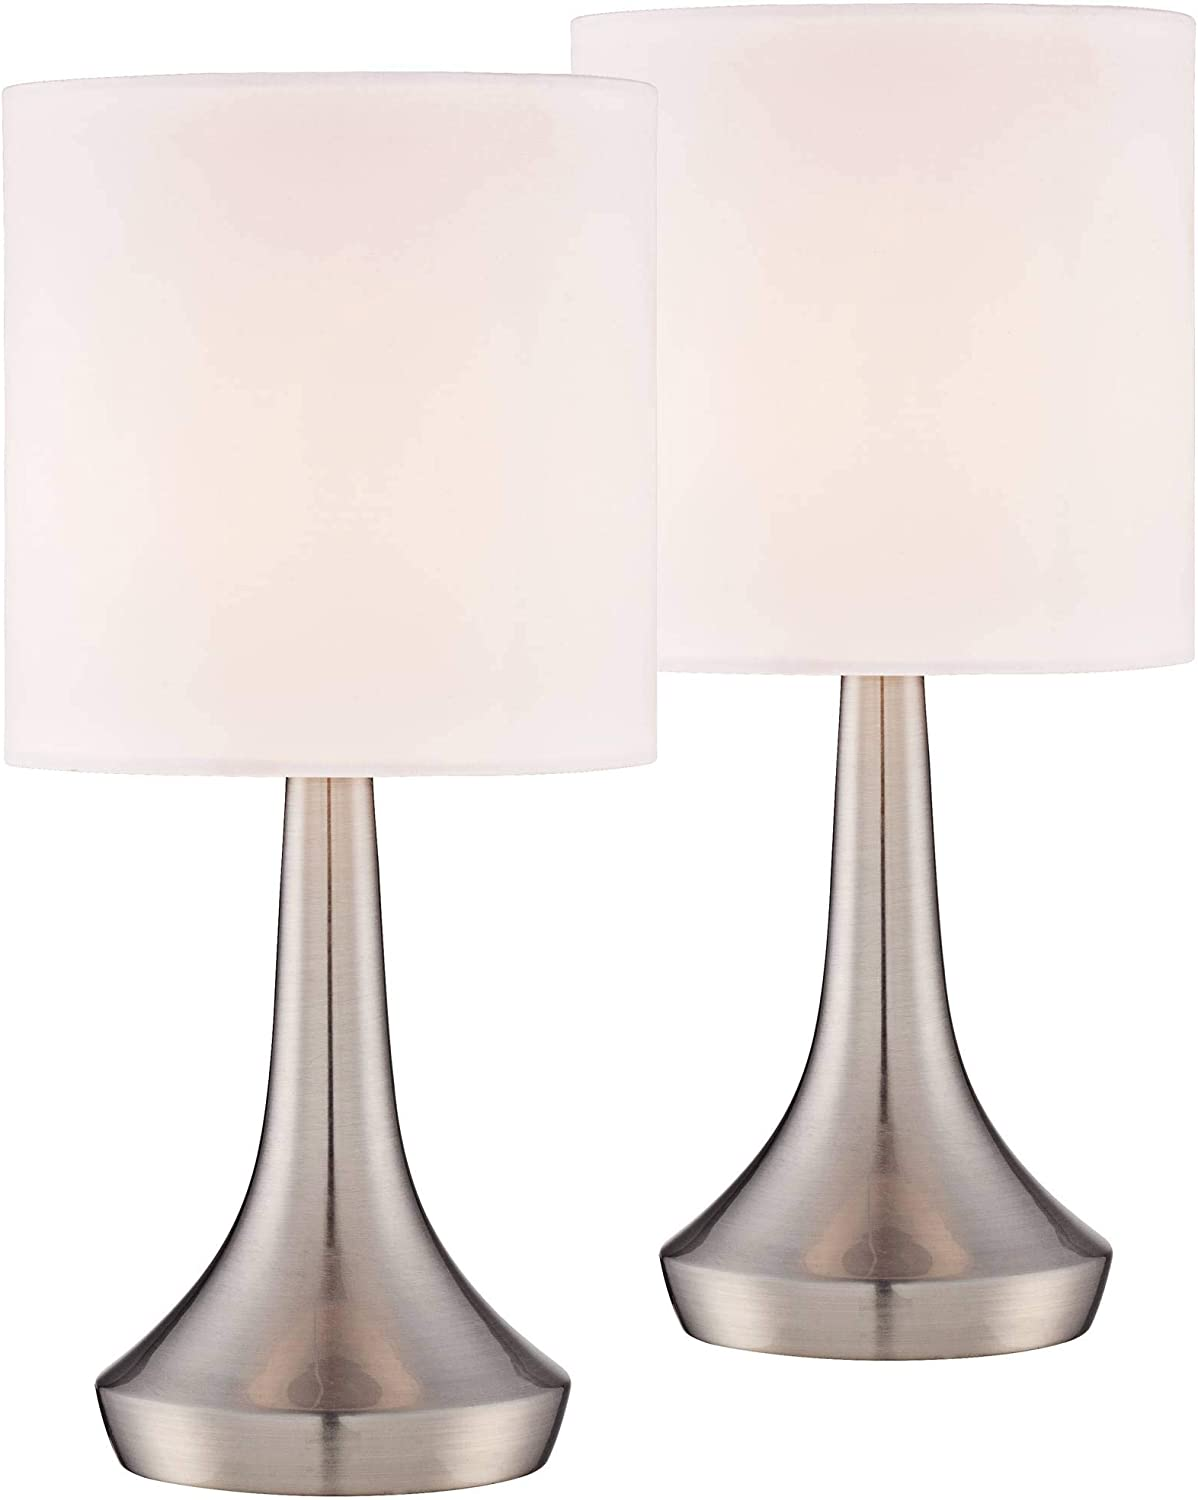 Zofia Modern Small Accent Table Lamps 13 High Set Of 2 Touch On Off Brushed Steel White Drum Shade For Bedroom Bedside Office 360 Lighting Amazon Com